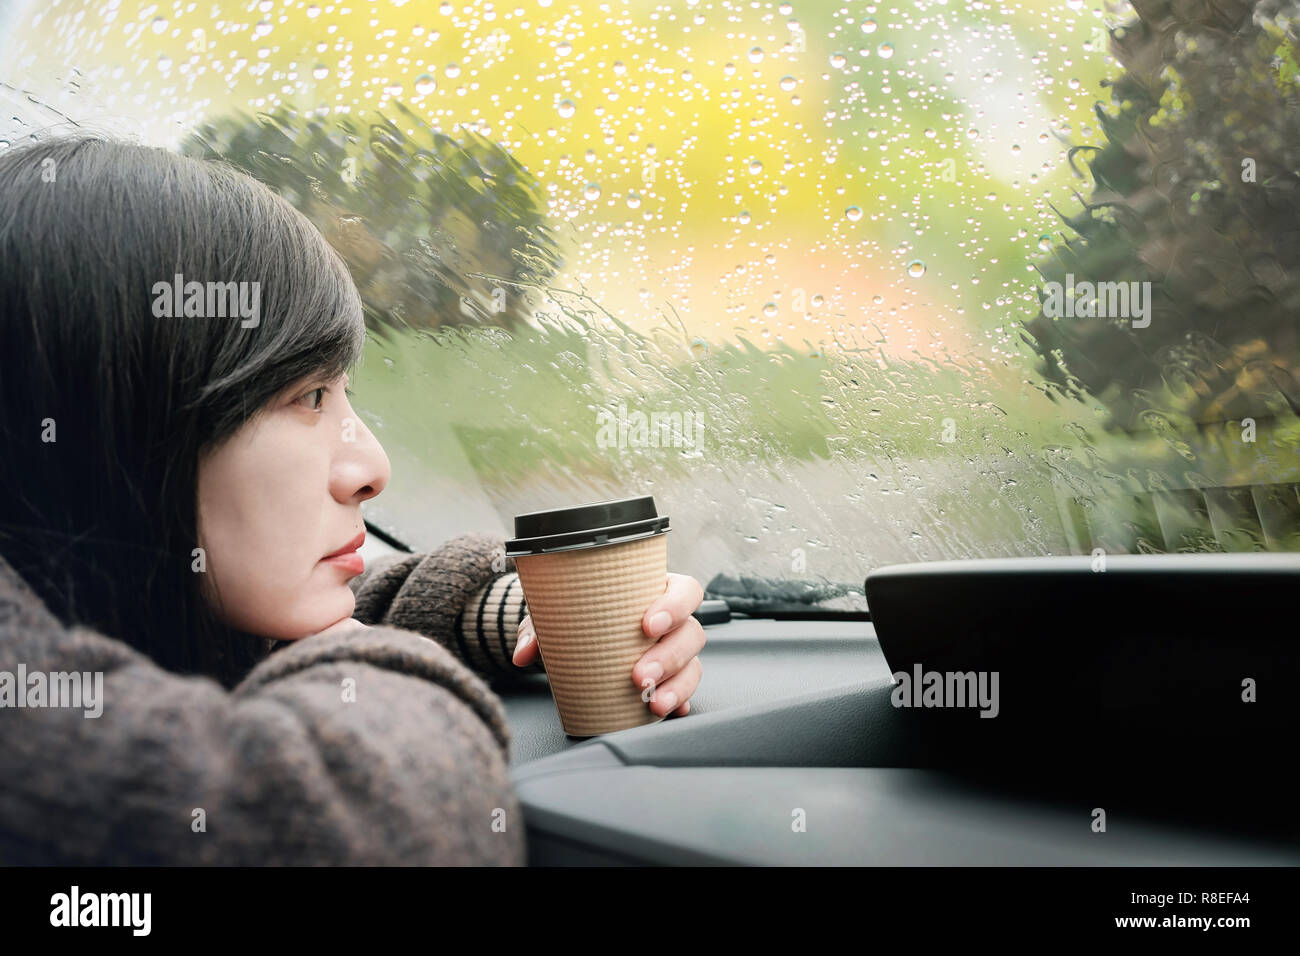 Rainy Day or Bad Weather in a Vacation Concept. a Sadness Woman with Hot Coffee sitting in Car and Looking Outside through Window, Waiting for Rain to - Stock Image